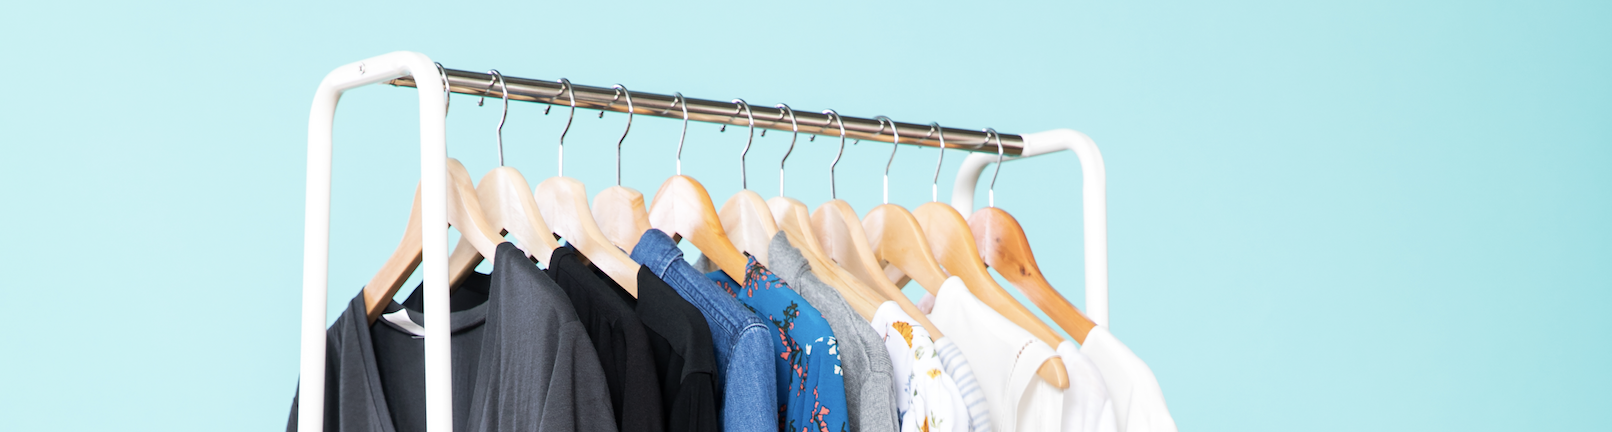 Thredup Launches A Clothing Line Designed For The Resale Revolution